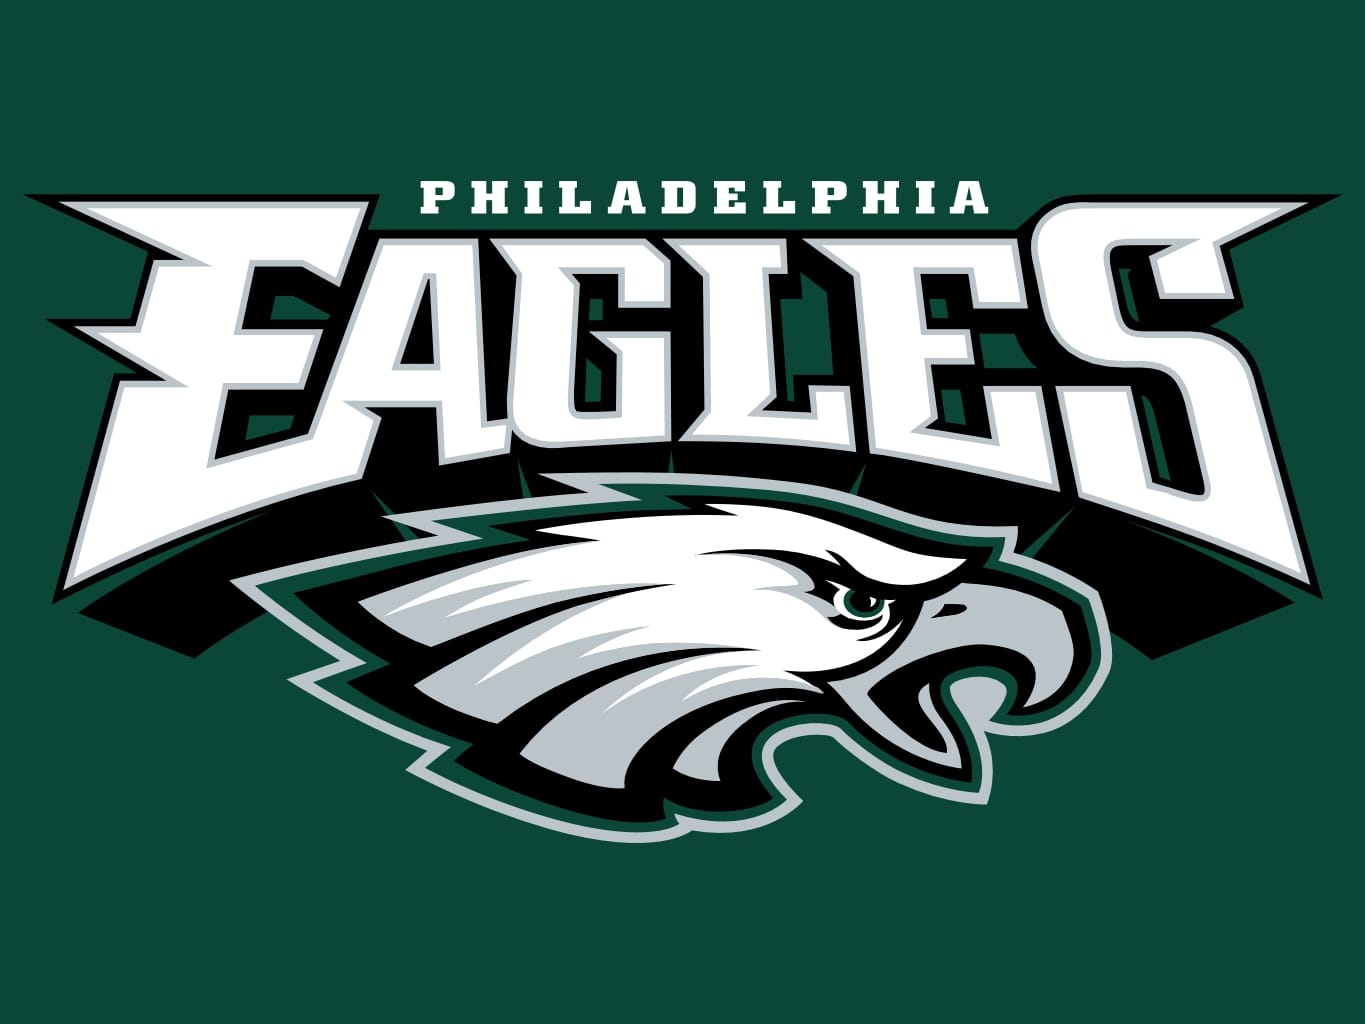 Could the Eagles Win the Super Bowl? - The Rush Limbaugh Show